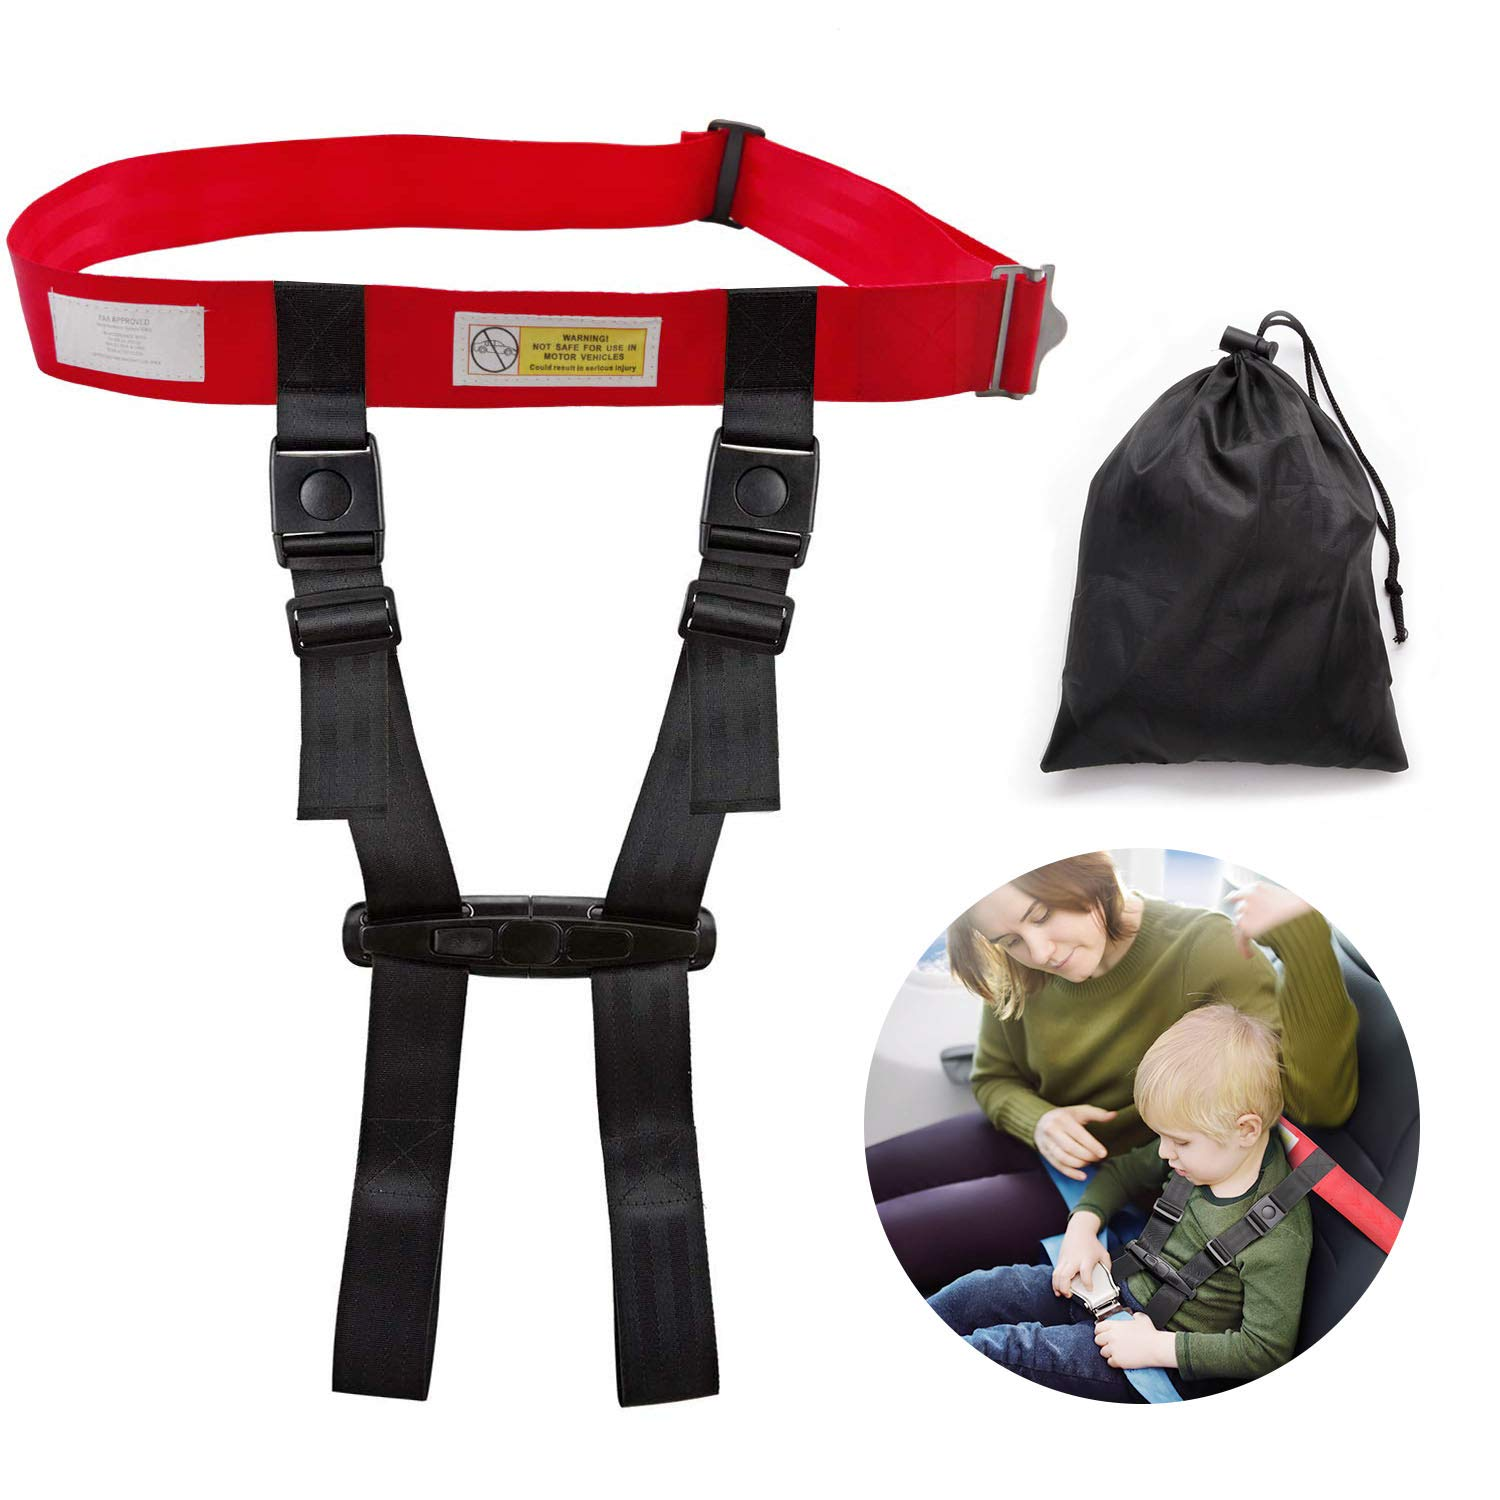 Child Airplane Travel Safety Harness Approved by FAA, Clip Strap Restraint System with Safe Airplane Cares Restraining Fly Travel Plane for Toddler Kids Child Infant